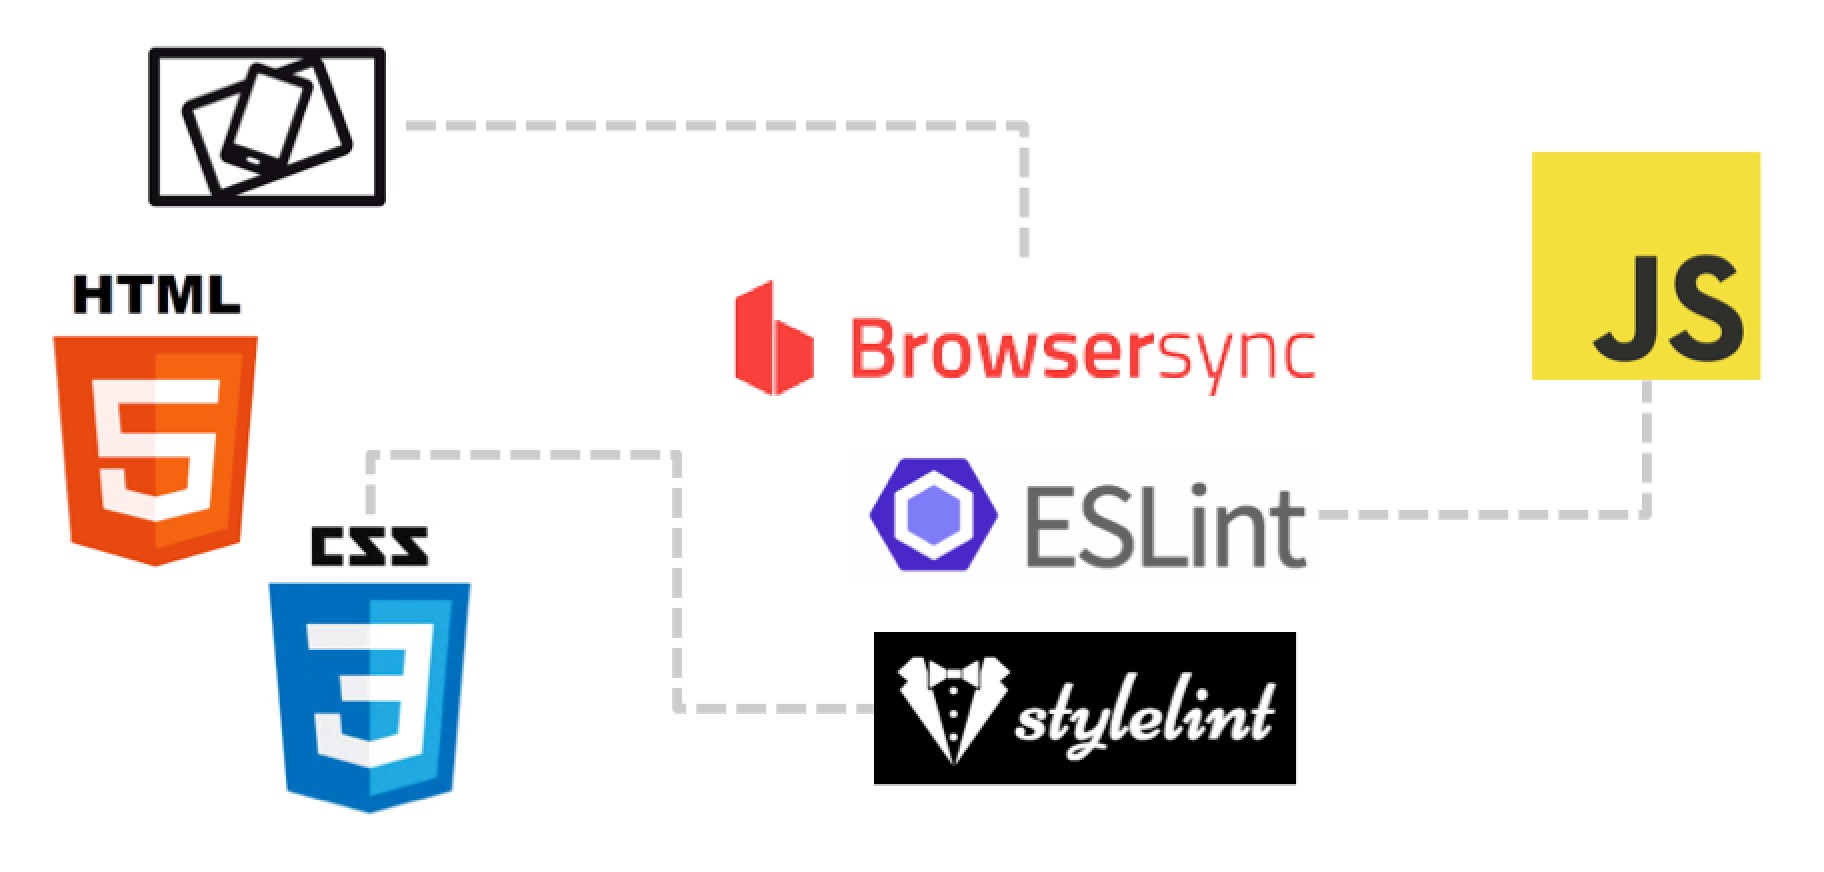 ESLint Install and Configure for React Apps - Manav Sehgal